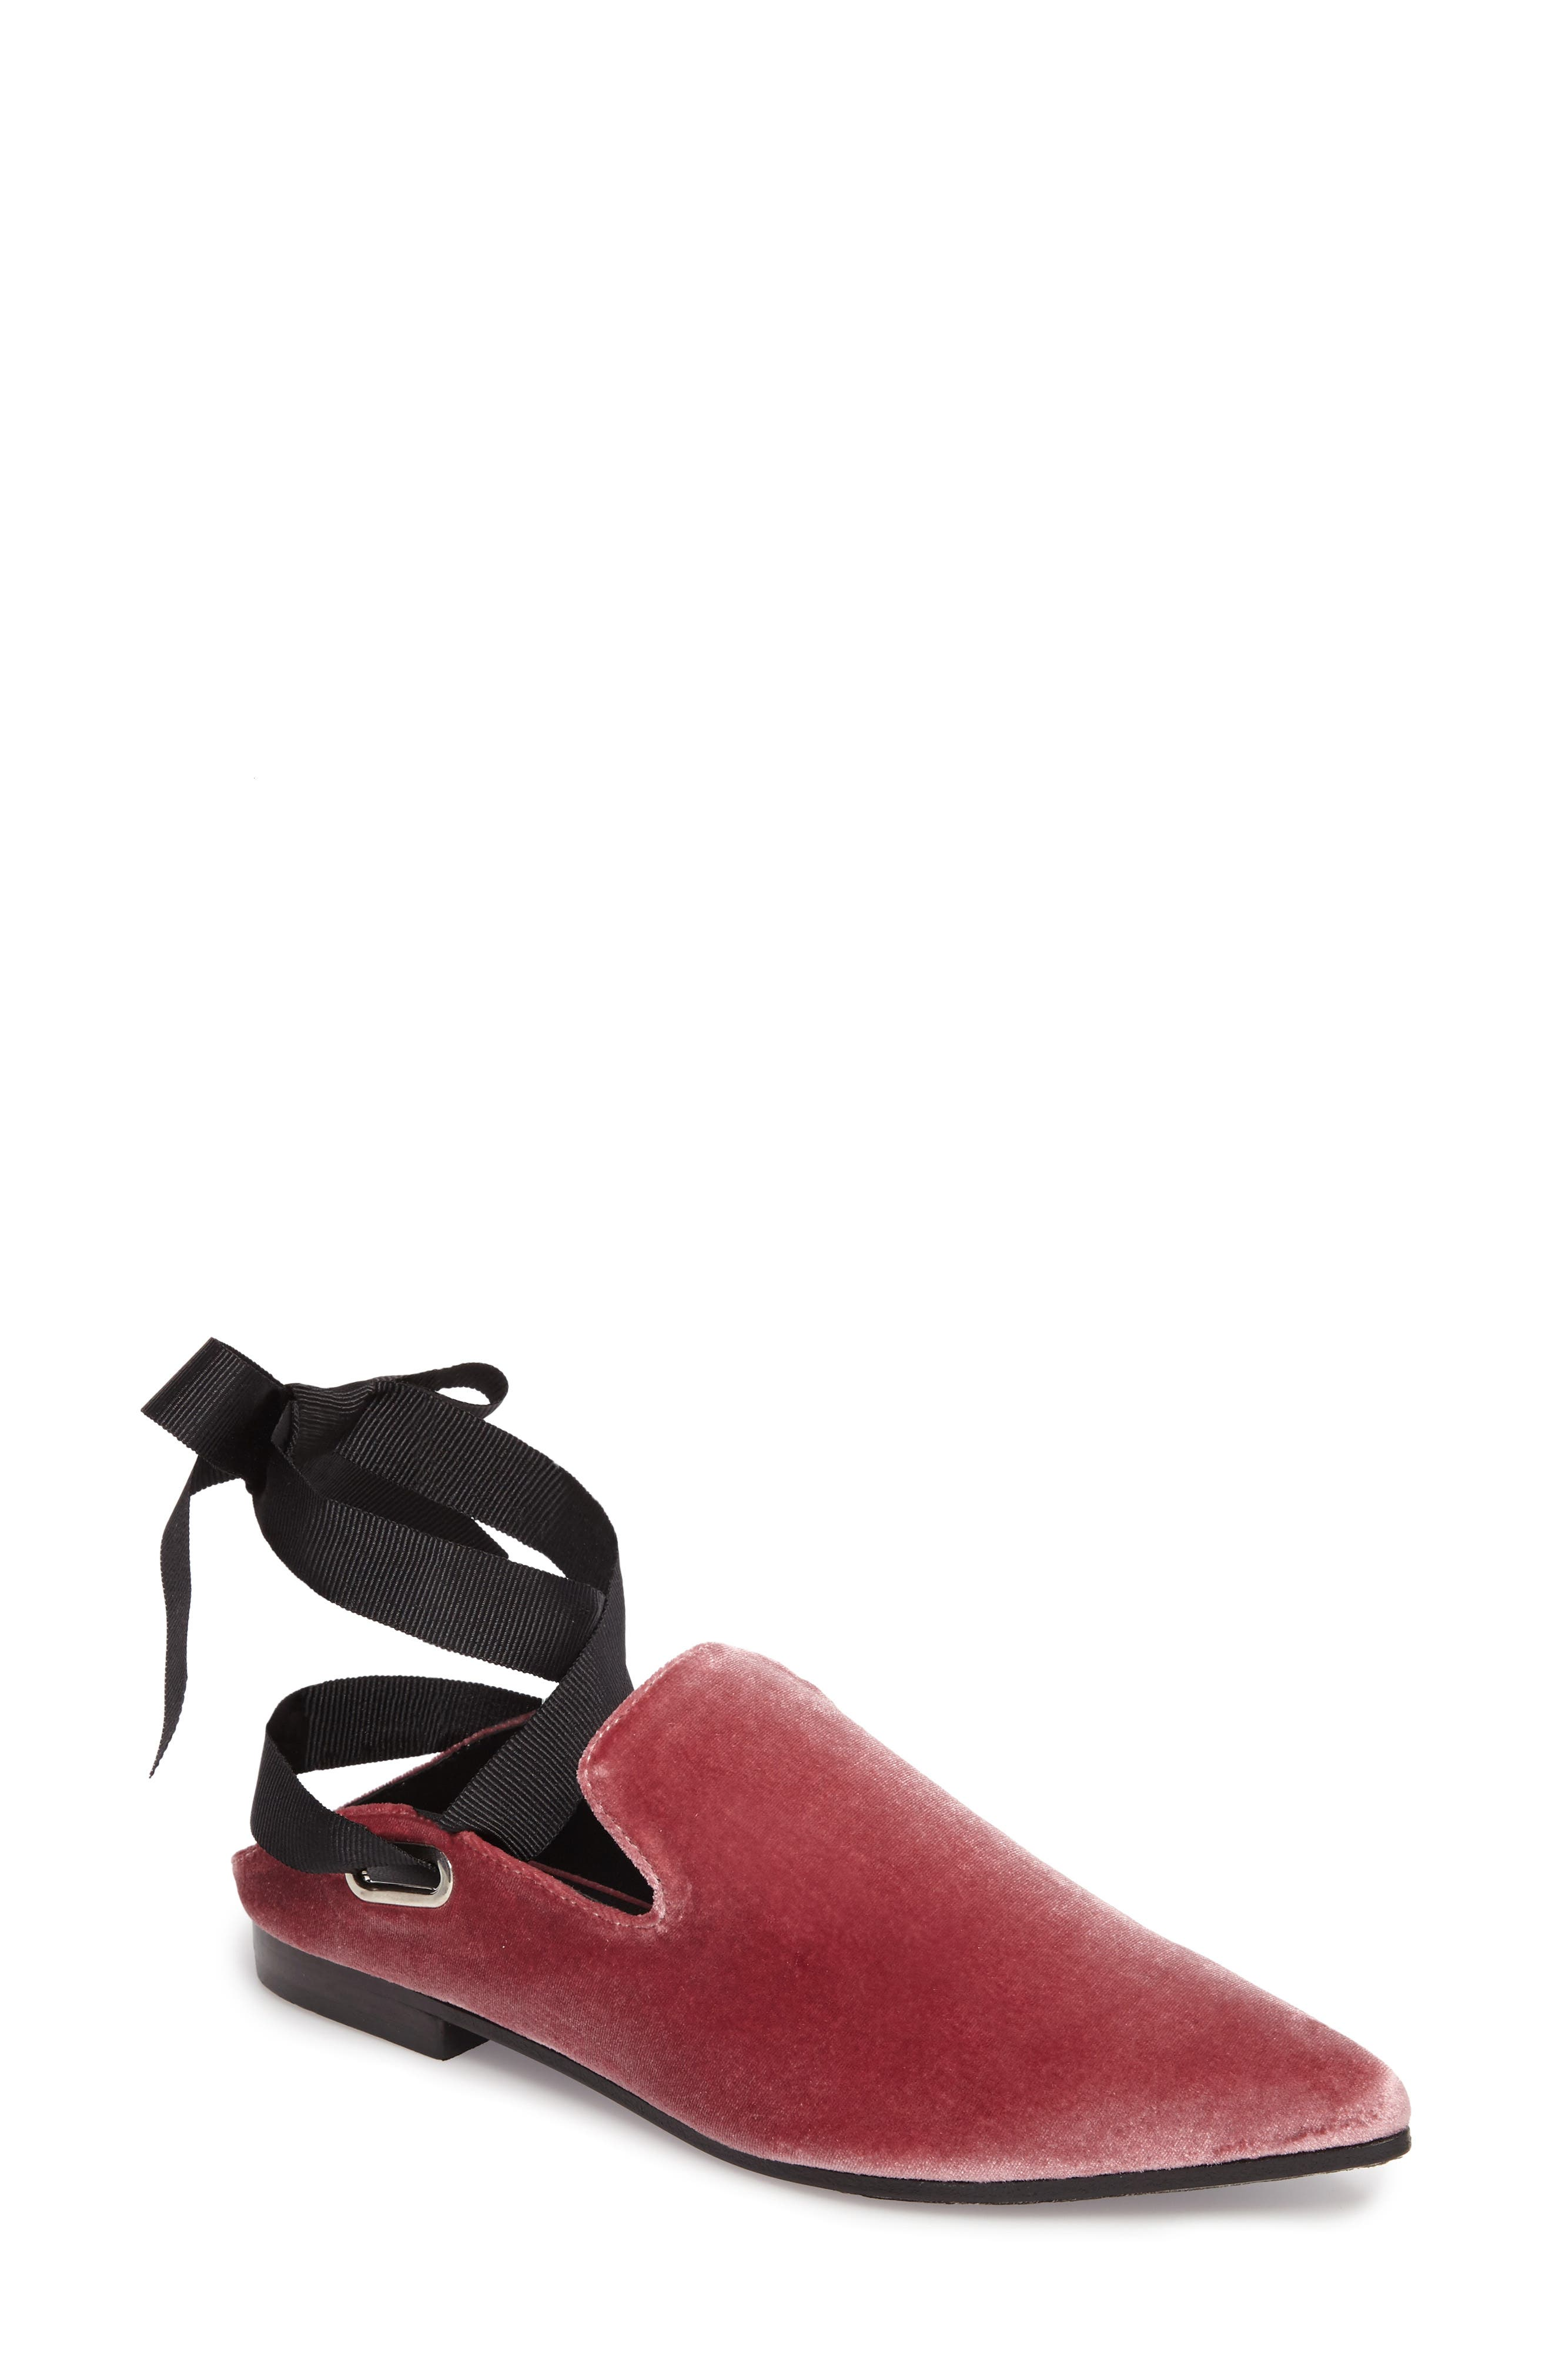 Robert Clergerie x Self-Portrait Lubat Mule (Women)